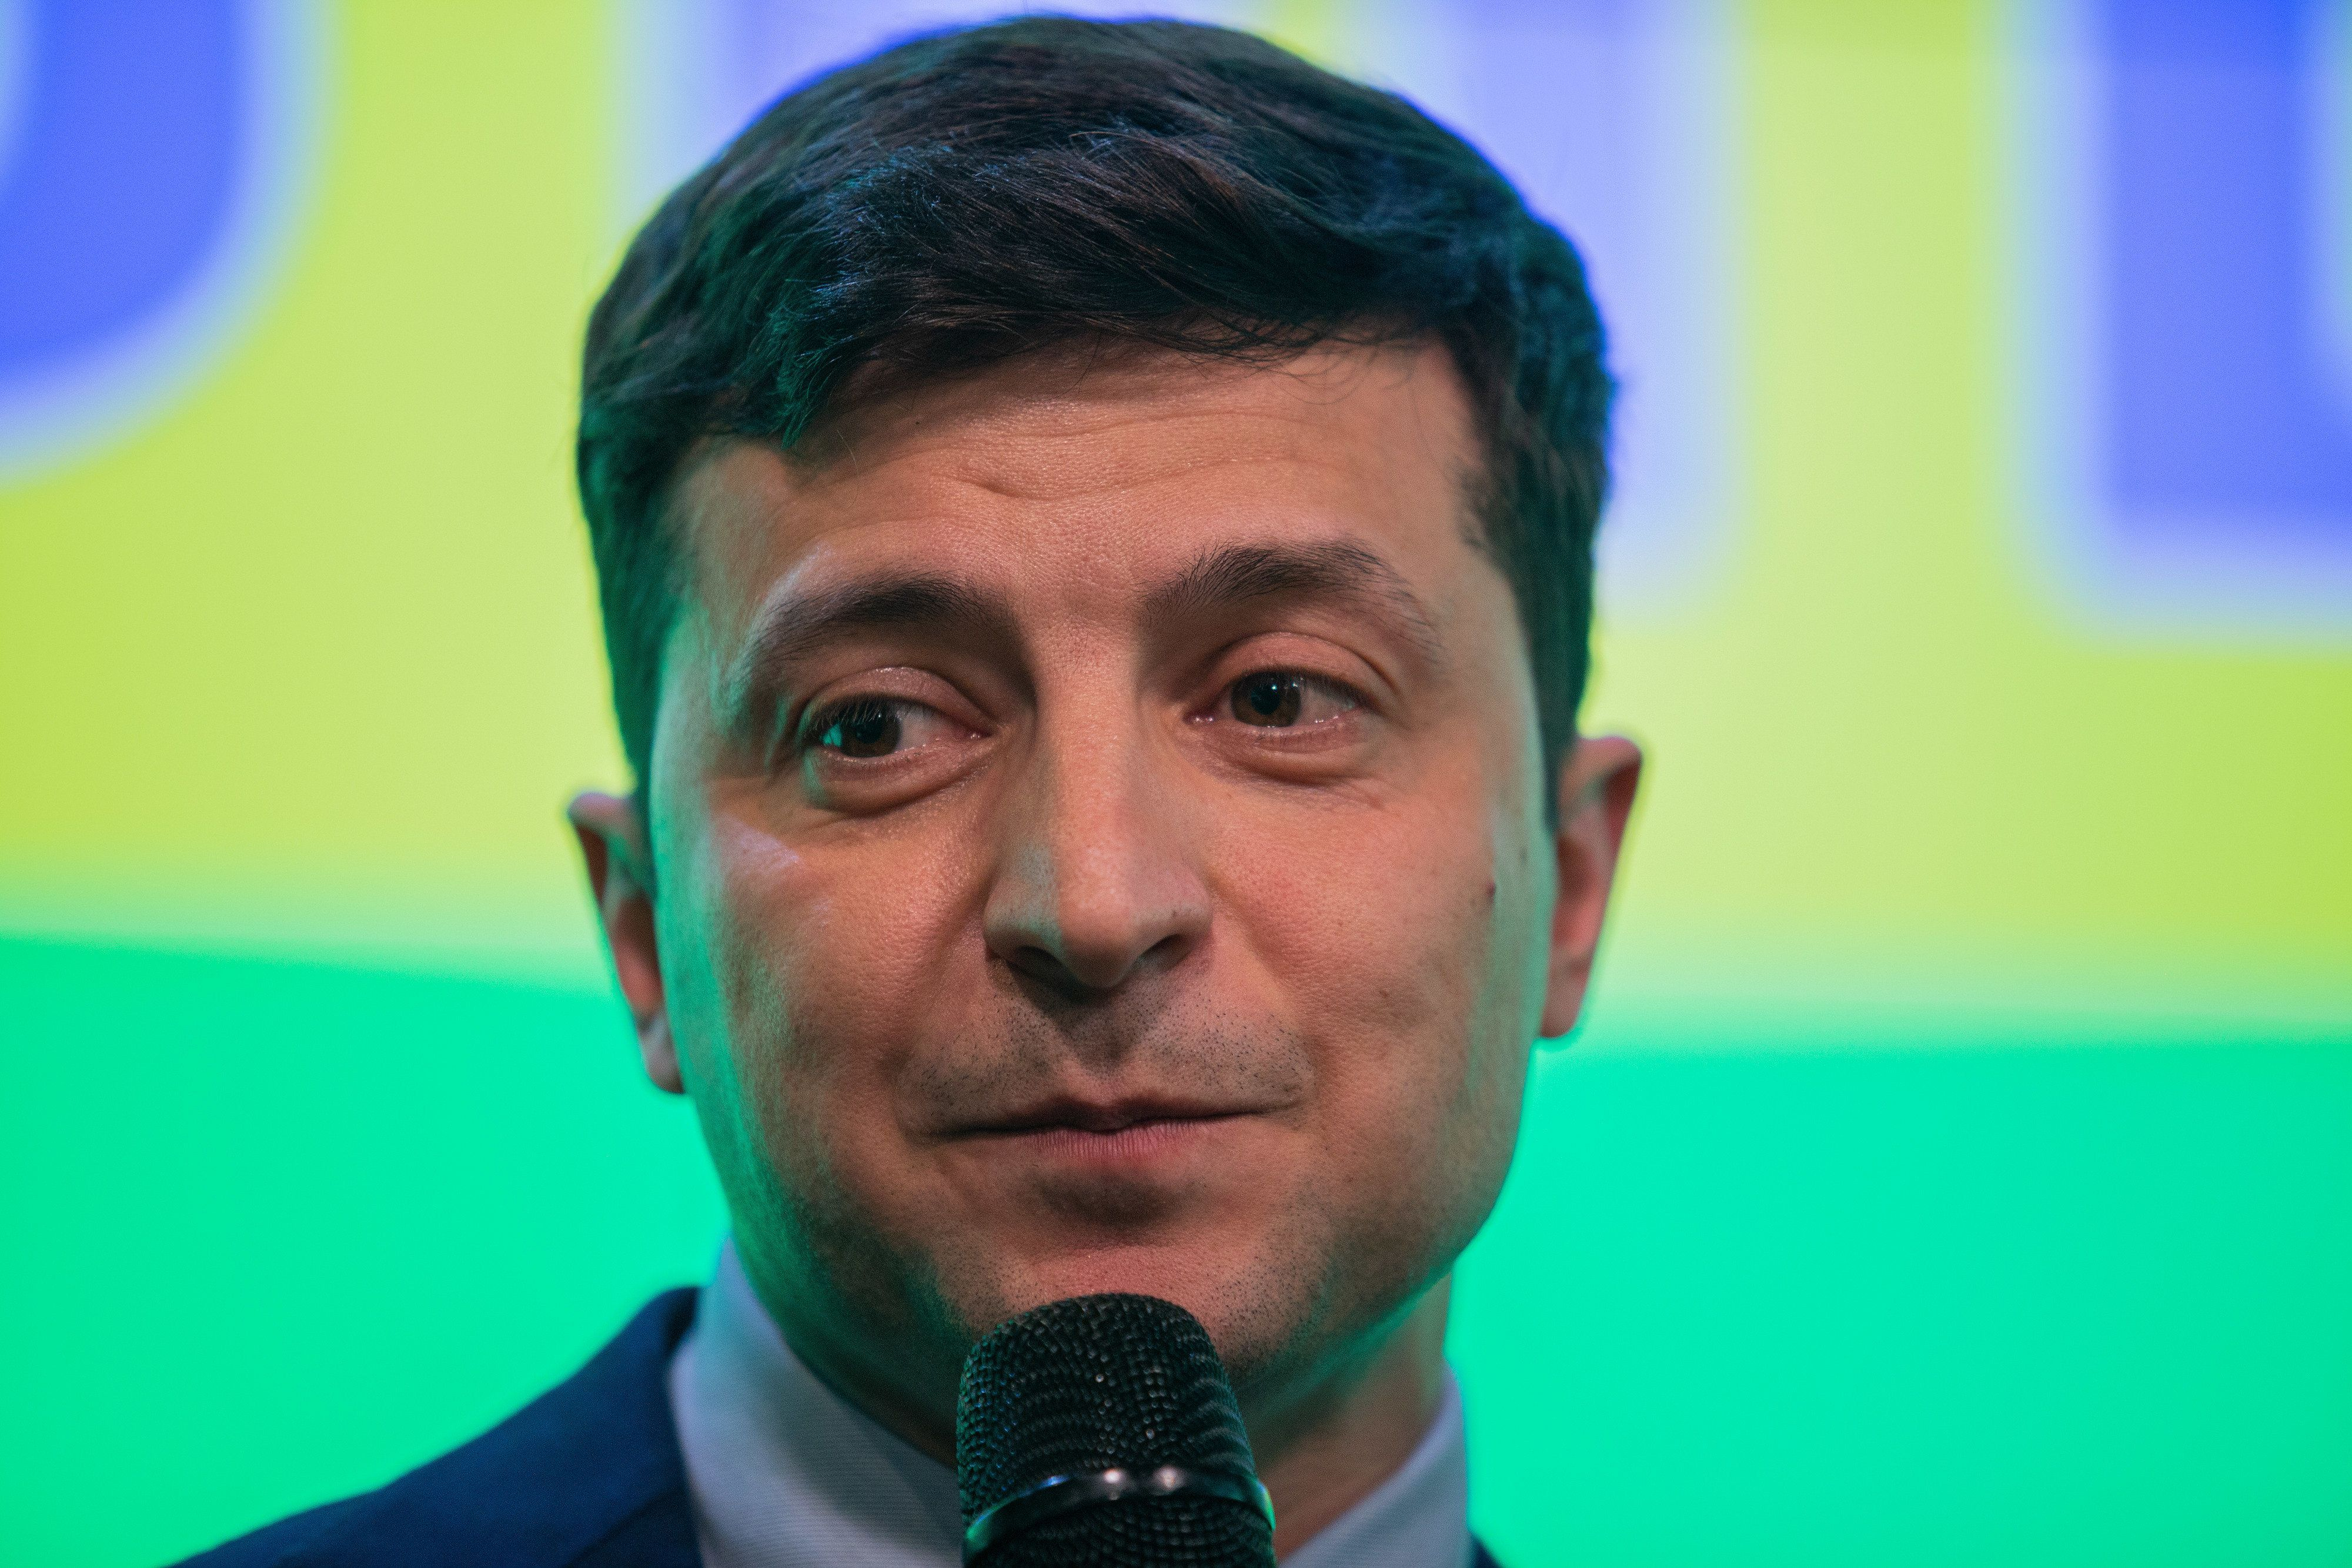 Volodymyr Zelenskiy, comedian and presidential candidate, speaks to members of the media following election results in Kiev, Ukraine, on Sunday, March 31, 2019. Ukraine's leader Petro Poroshenko will face a runoff next month against Zelenskiy to hold on to the presidency, according to an exit poll following the first round of elections on Sunday. Photographer: Taylor Weidman/Bloomberg via Getty Images